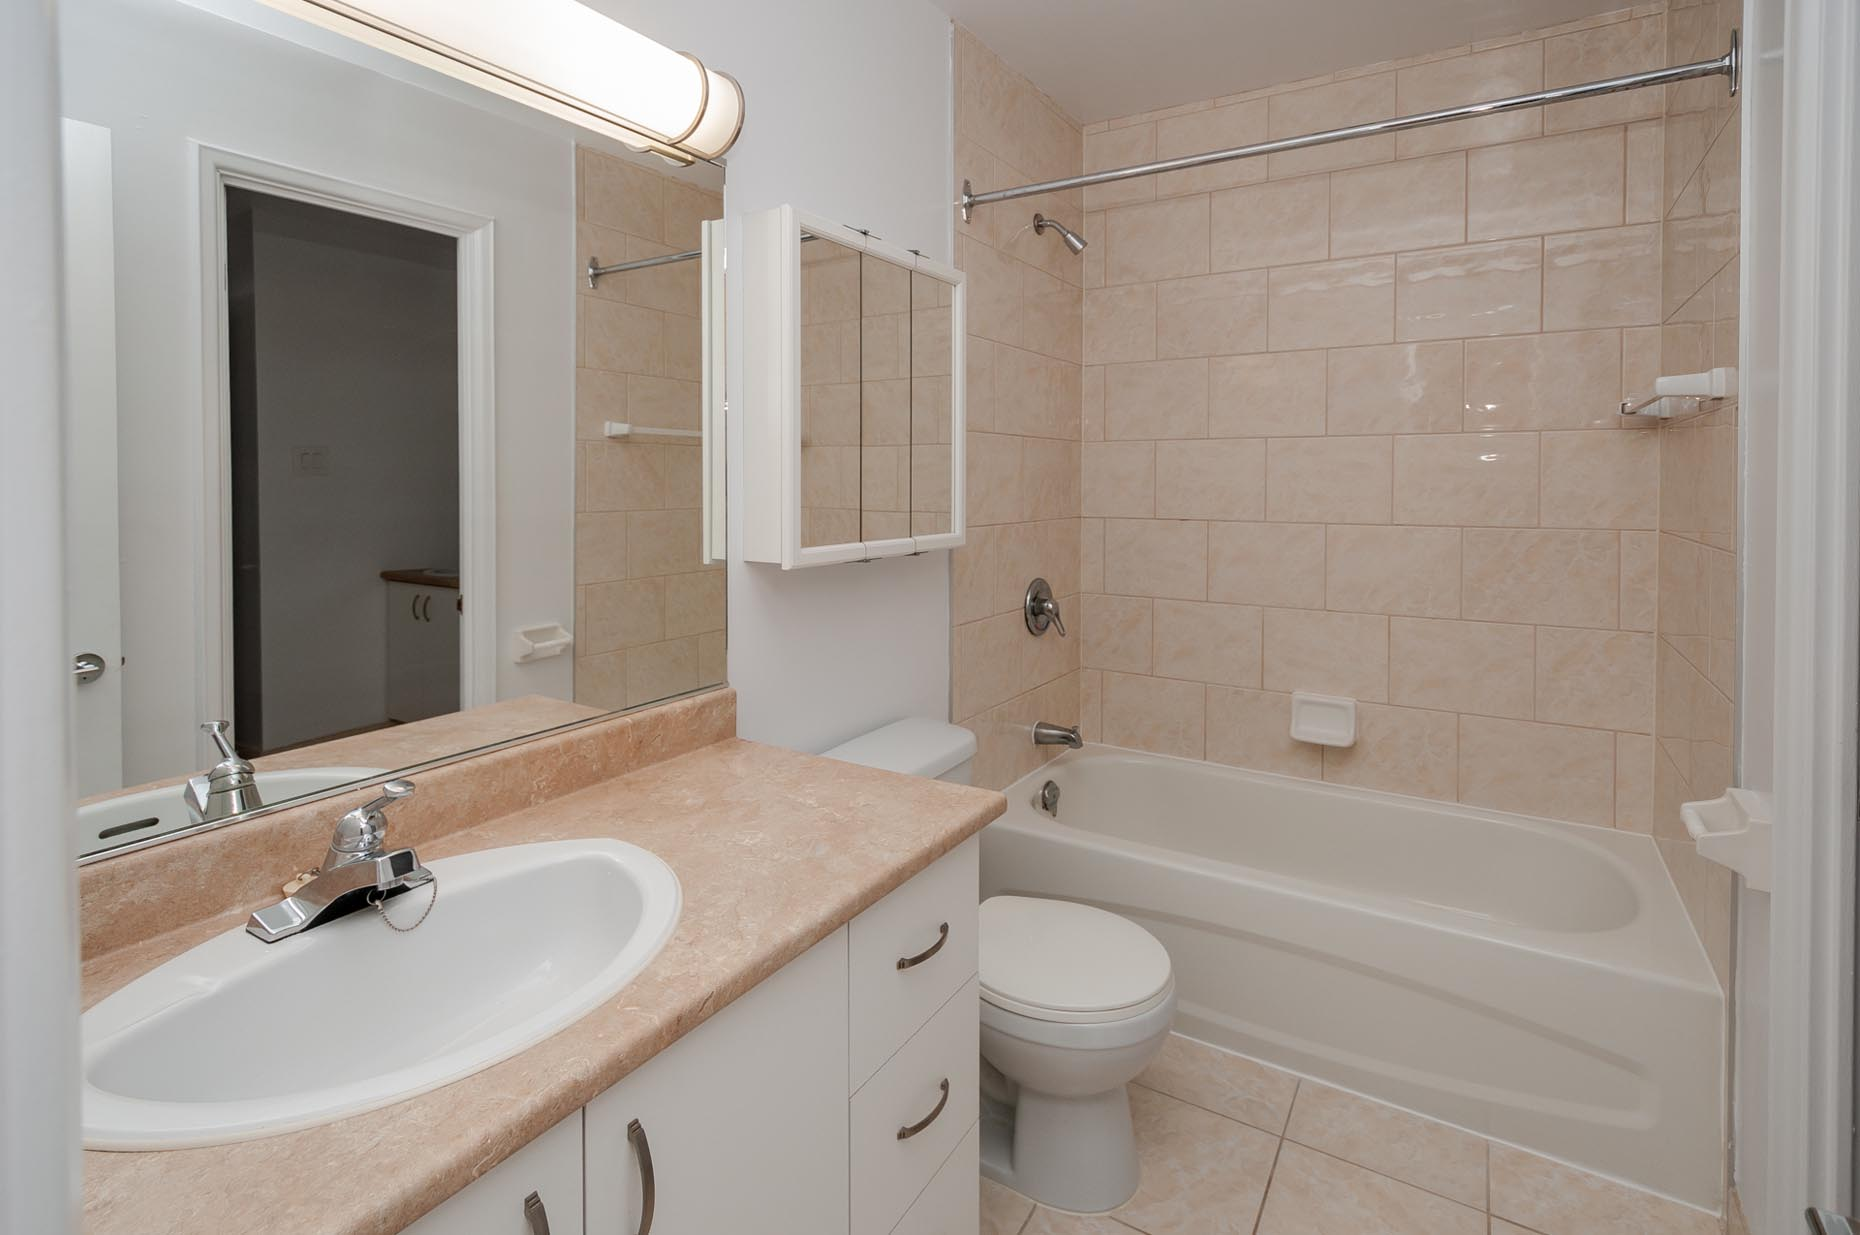 Bathroom in a classic apartment suite at Place Charlesbourg in Québec